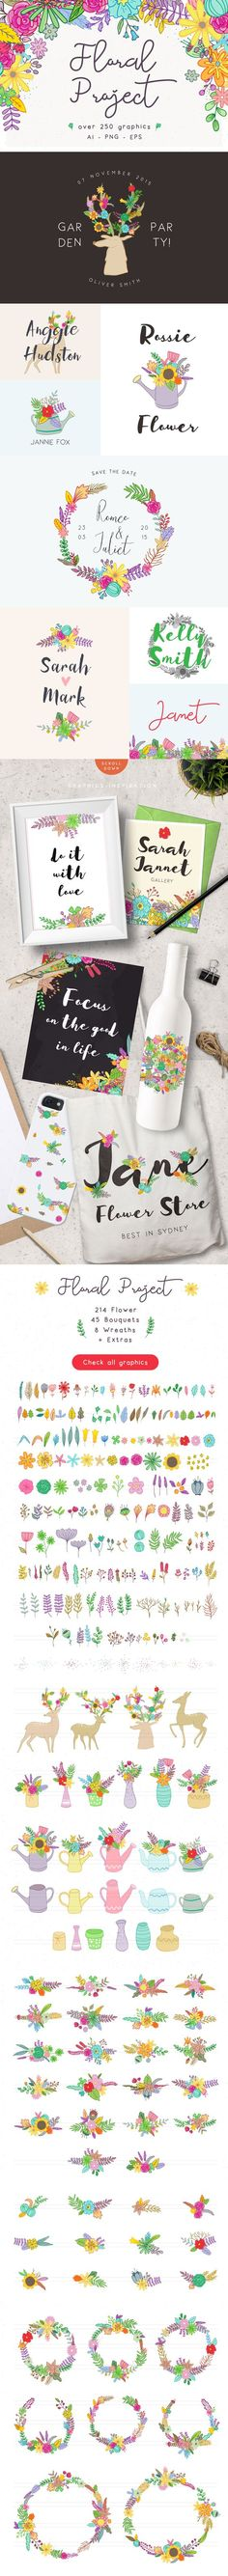 Spring florals and doe deers clip art for garden party invites, garage sale flyers, and more.